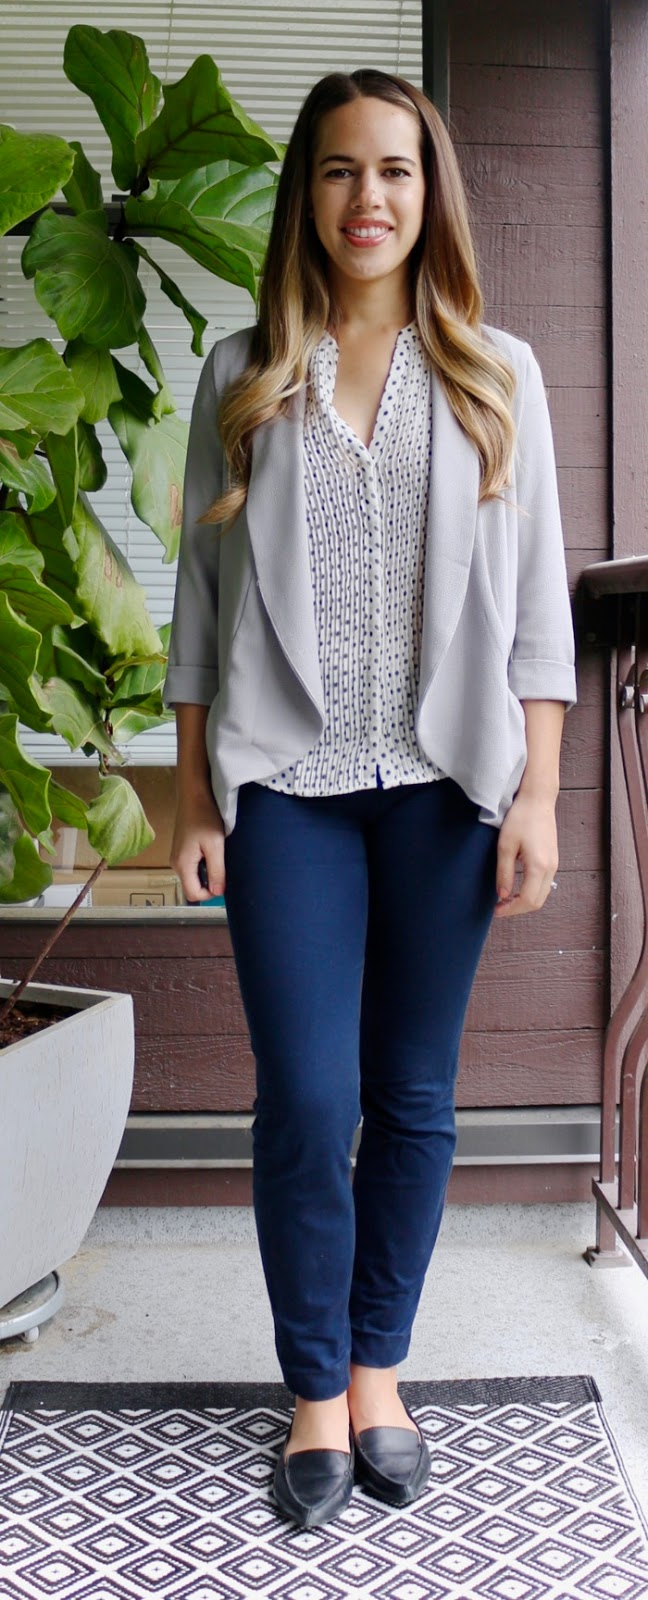 Jules in Flats - Polka Dot Blouse with Blazer